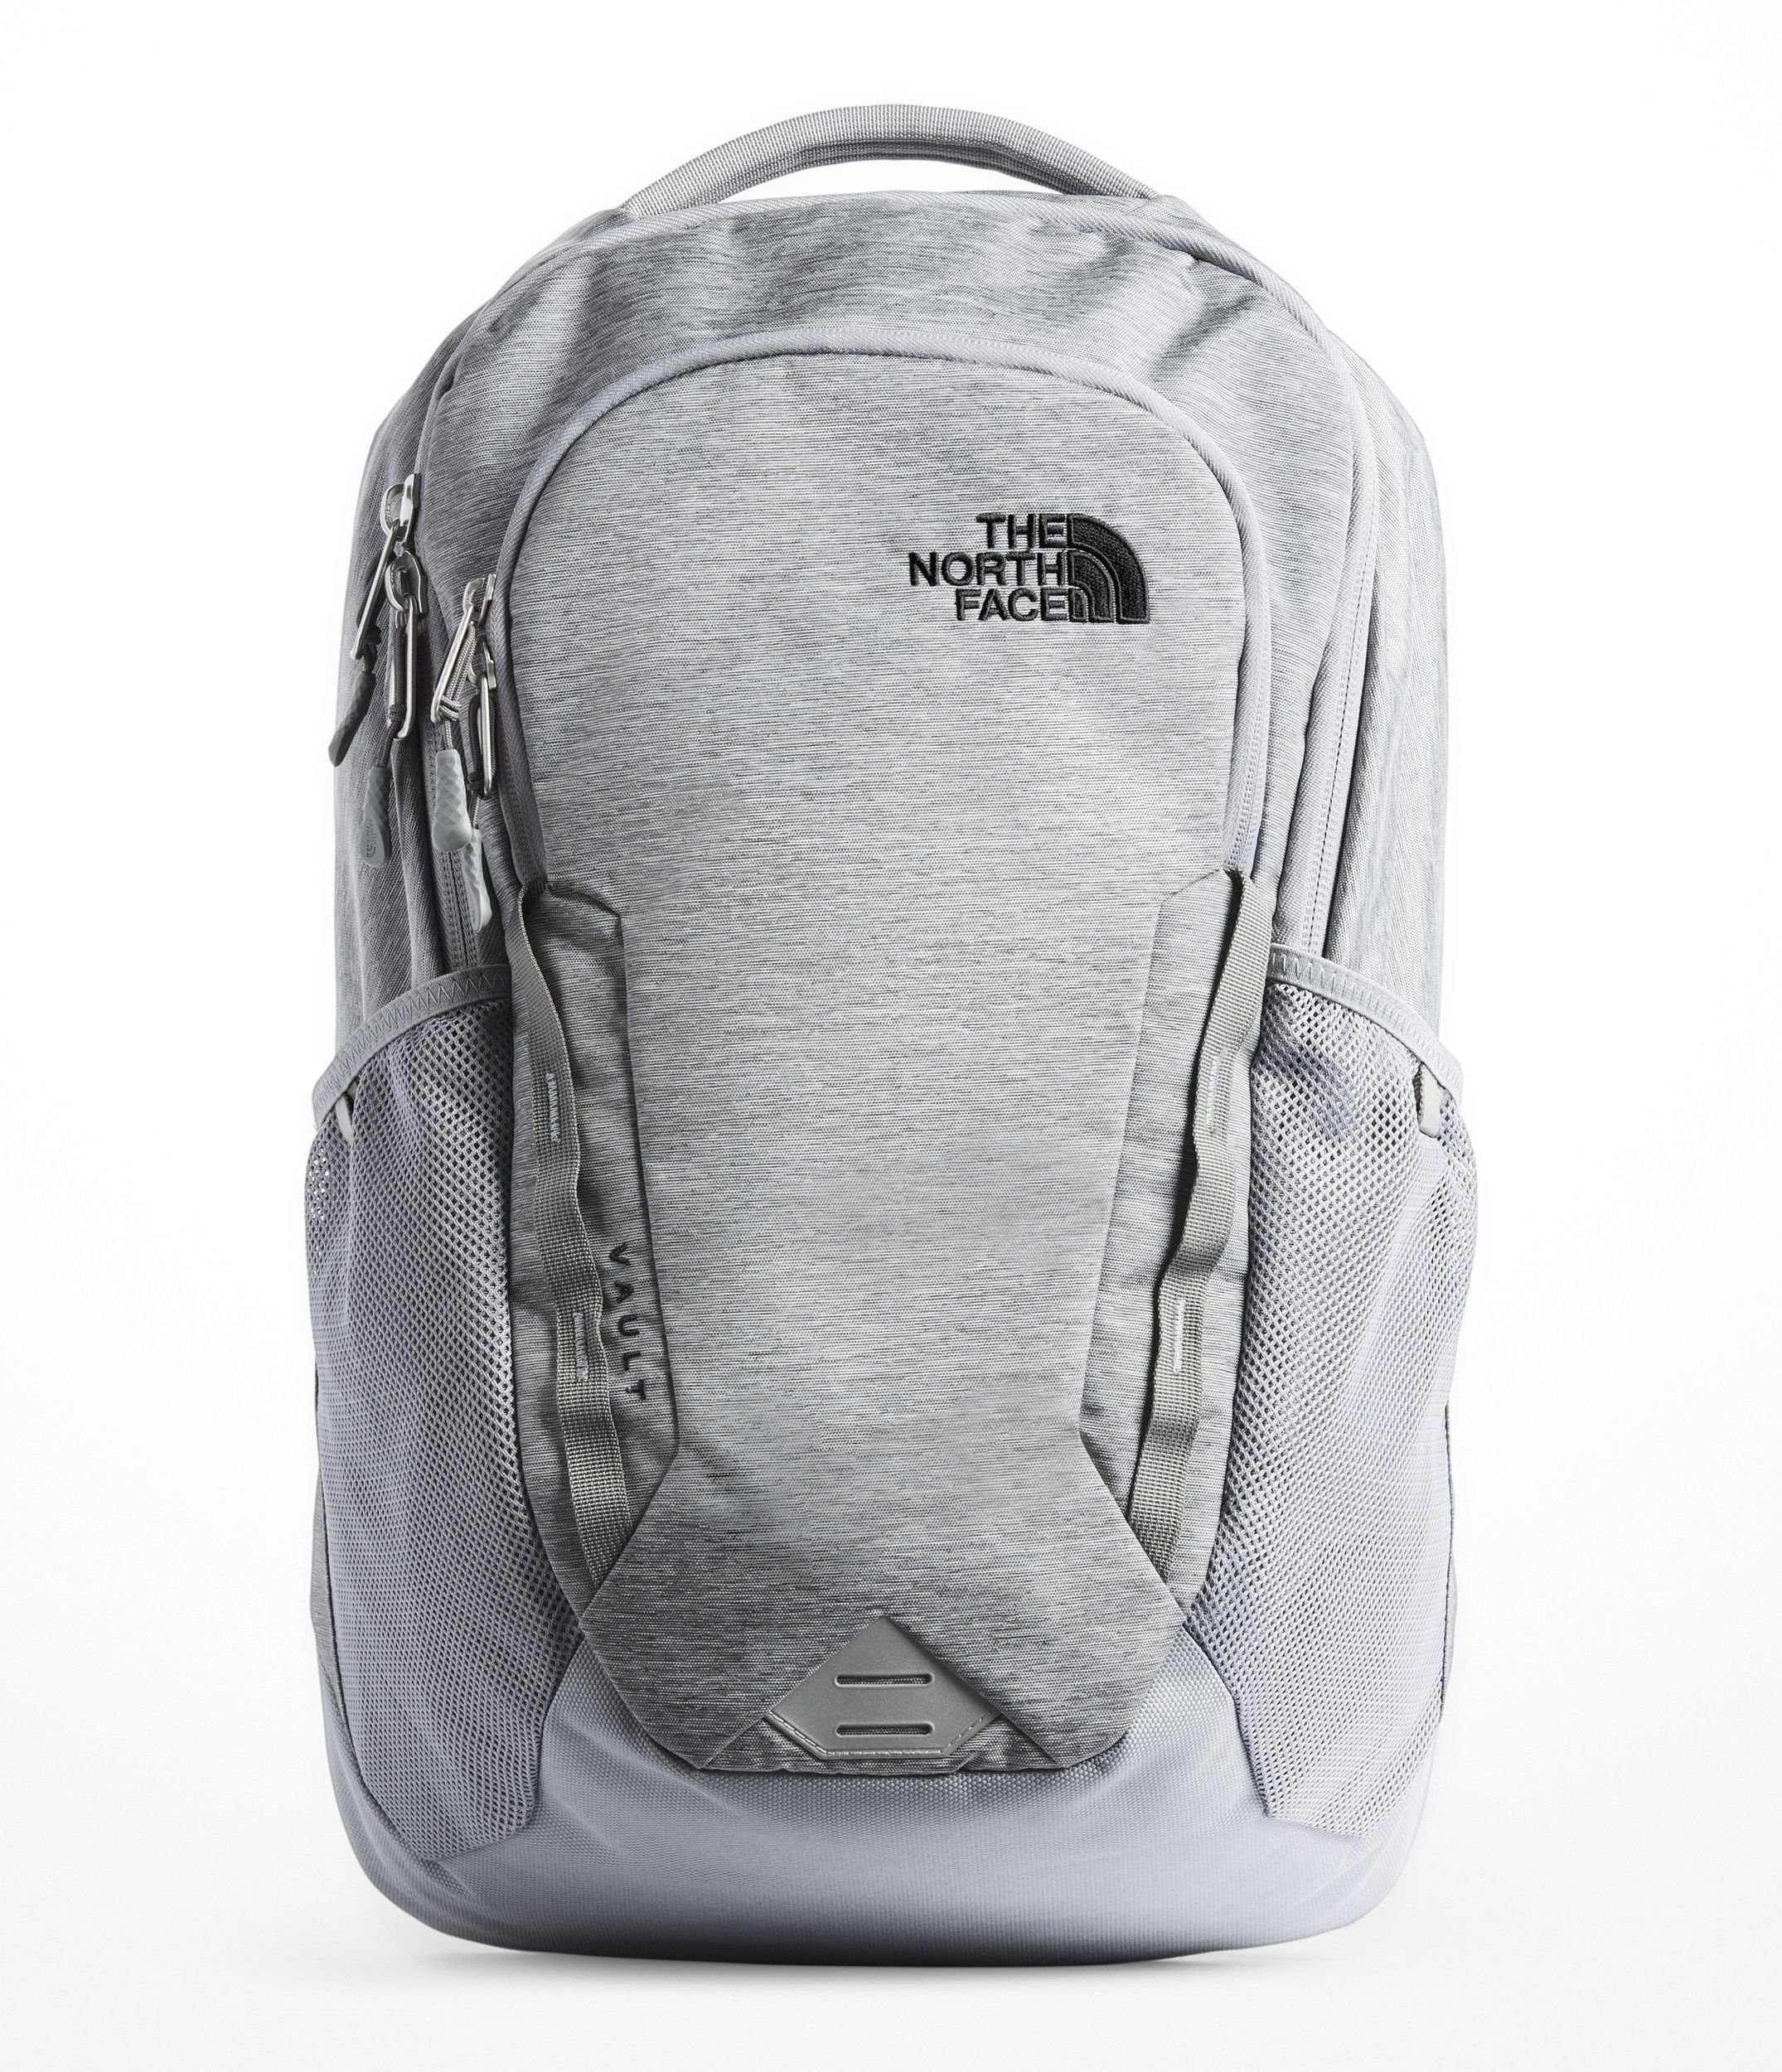 The North Face Unisex Vault Backpack Mid Grey Dark Heather/Tnf Black One Size by The North Face